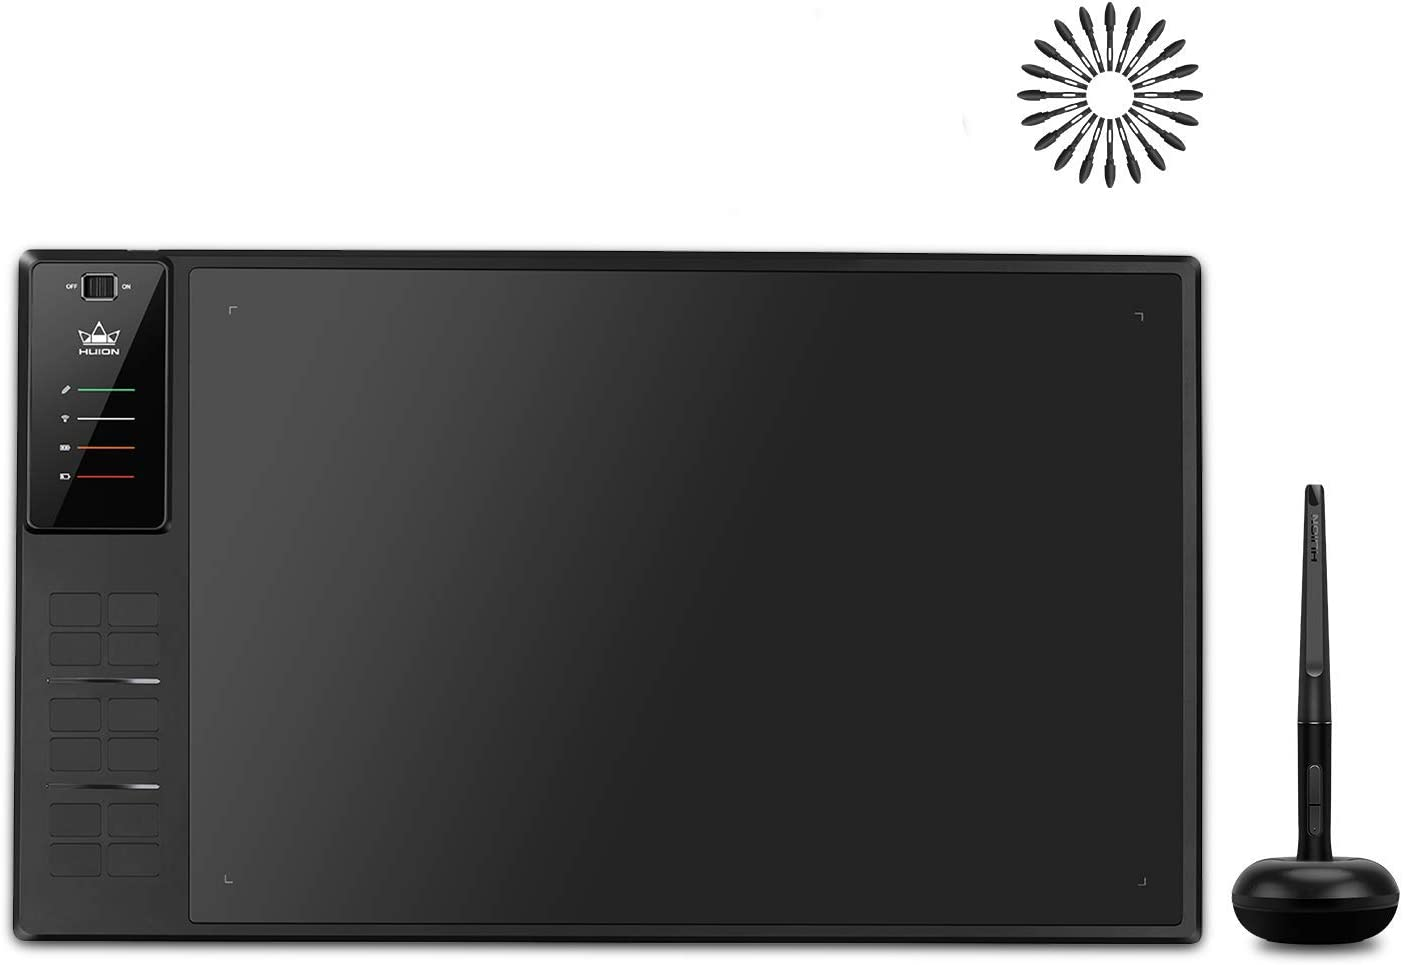 Huion Inspiroy WH1409 V2 Wireless Digital Graphic Drawing Tablet Tilt Function Battery-Free Stylus with 12 Press Keys and 20 Pen Nibs